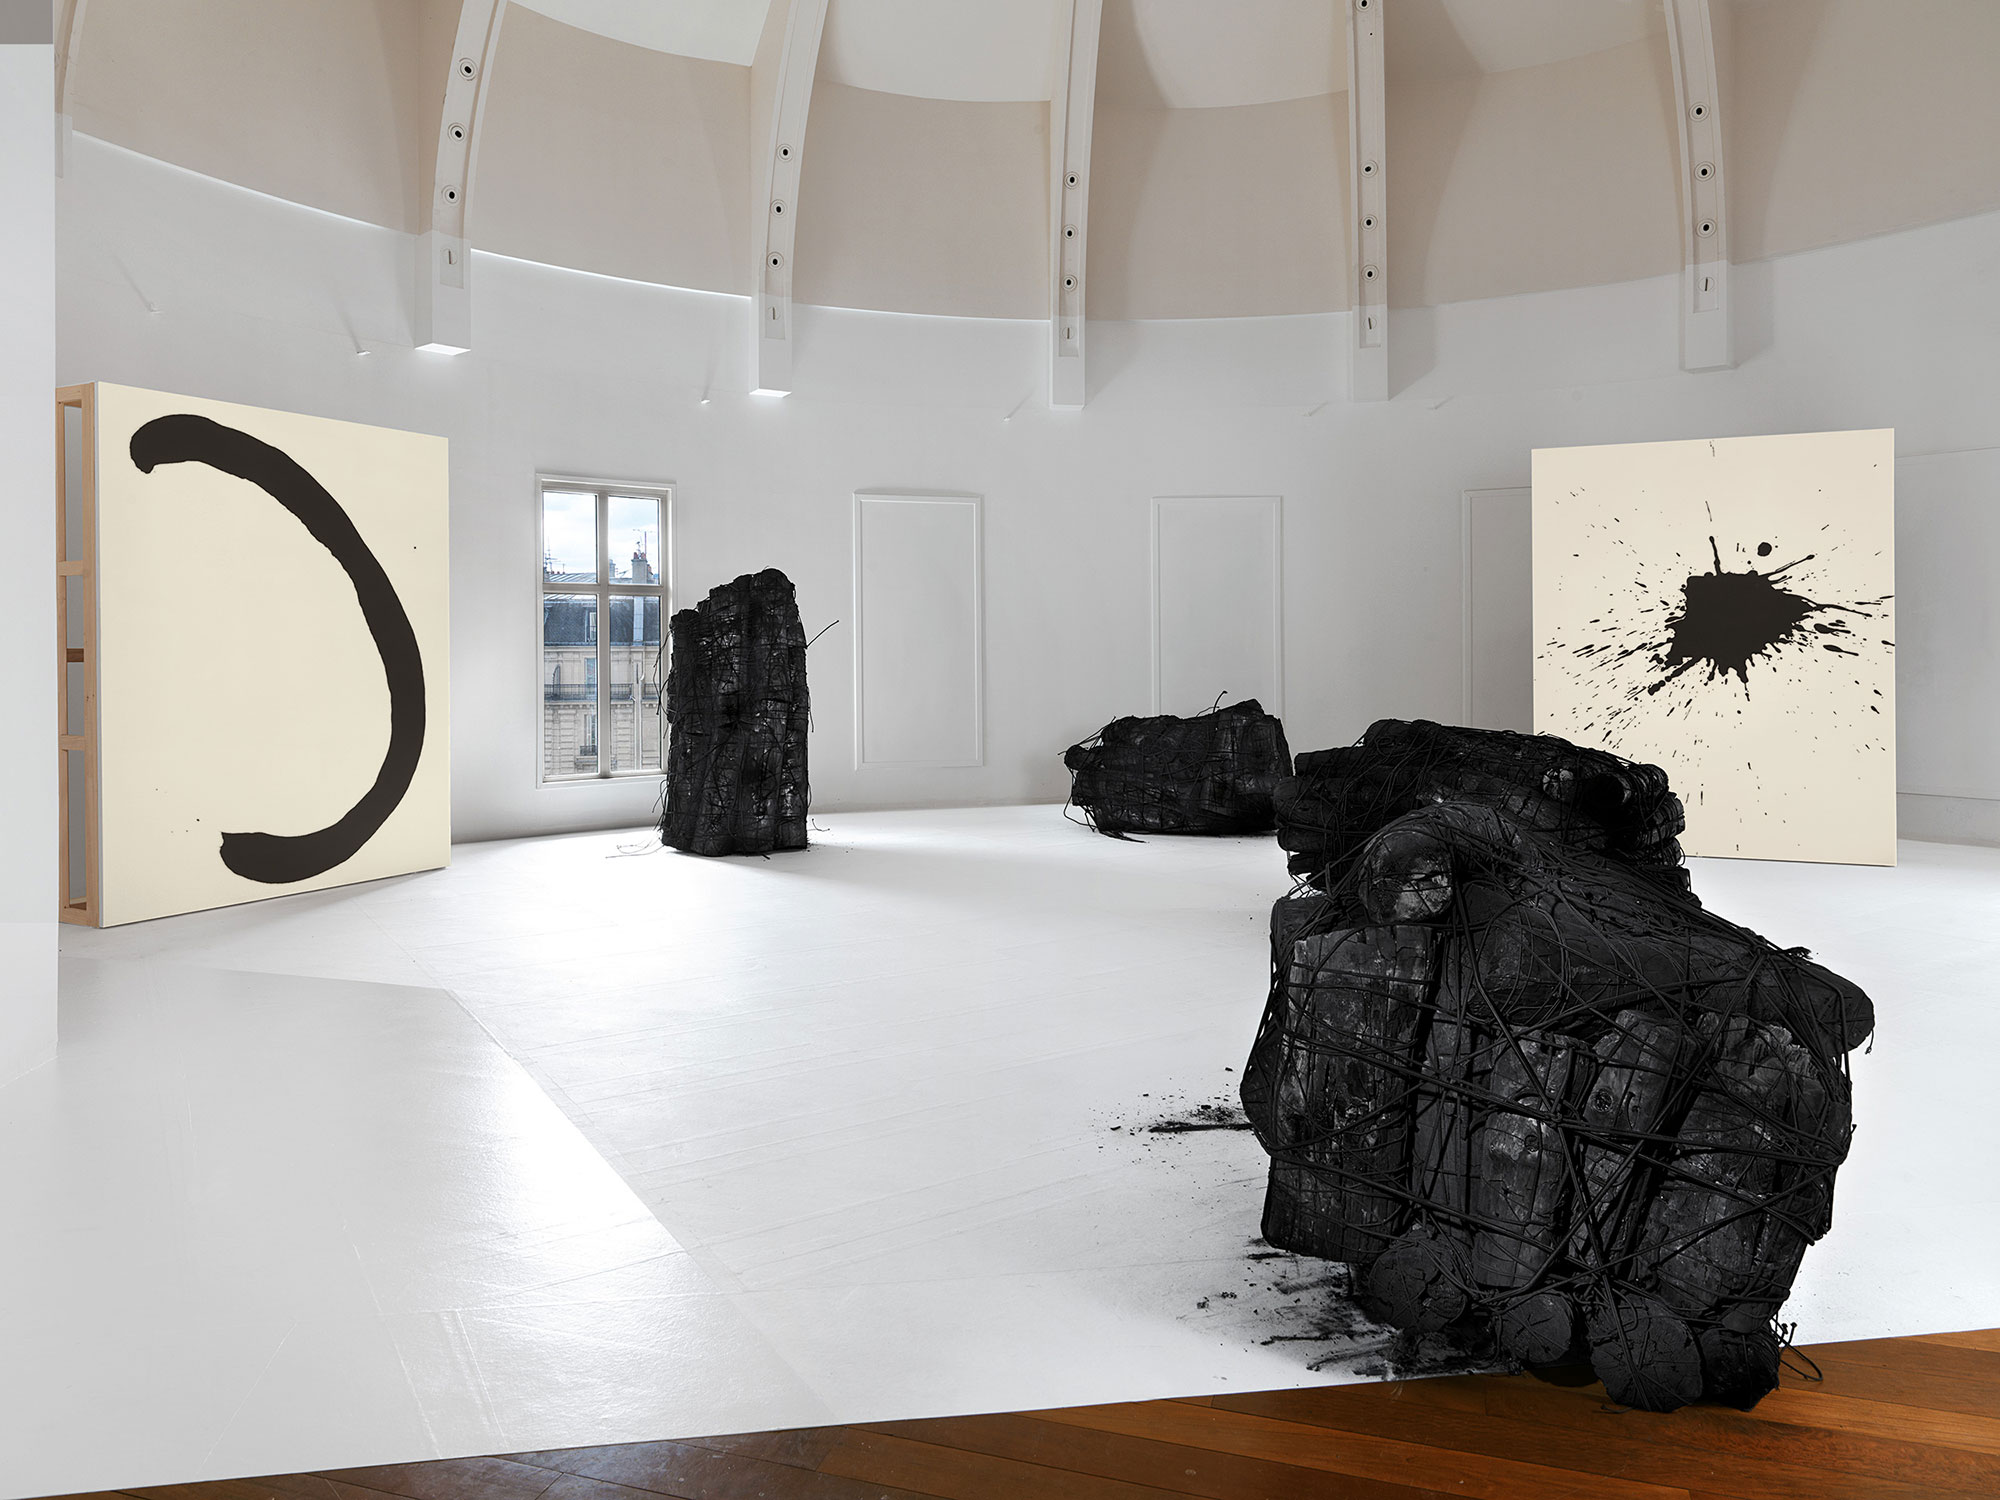 Issu du feu, Charcoal with rubber band on paper, 160 x 110 x 110 cm (about), Acrylic medium, Charcoal black on canvas, 260 x 194 cm, 2015, Installation view, Musee Guimet, 2015